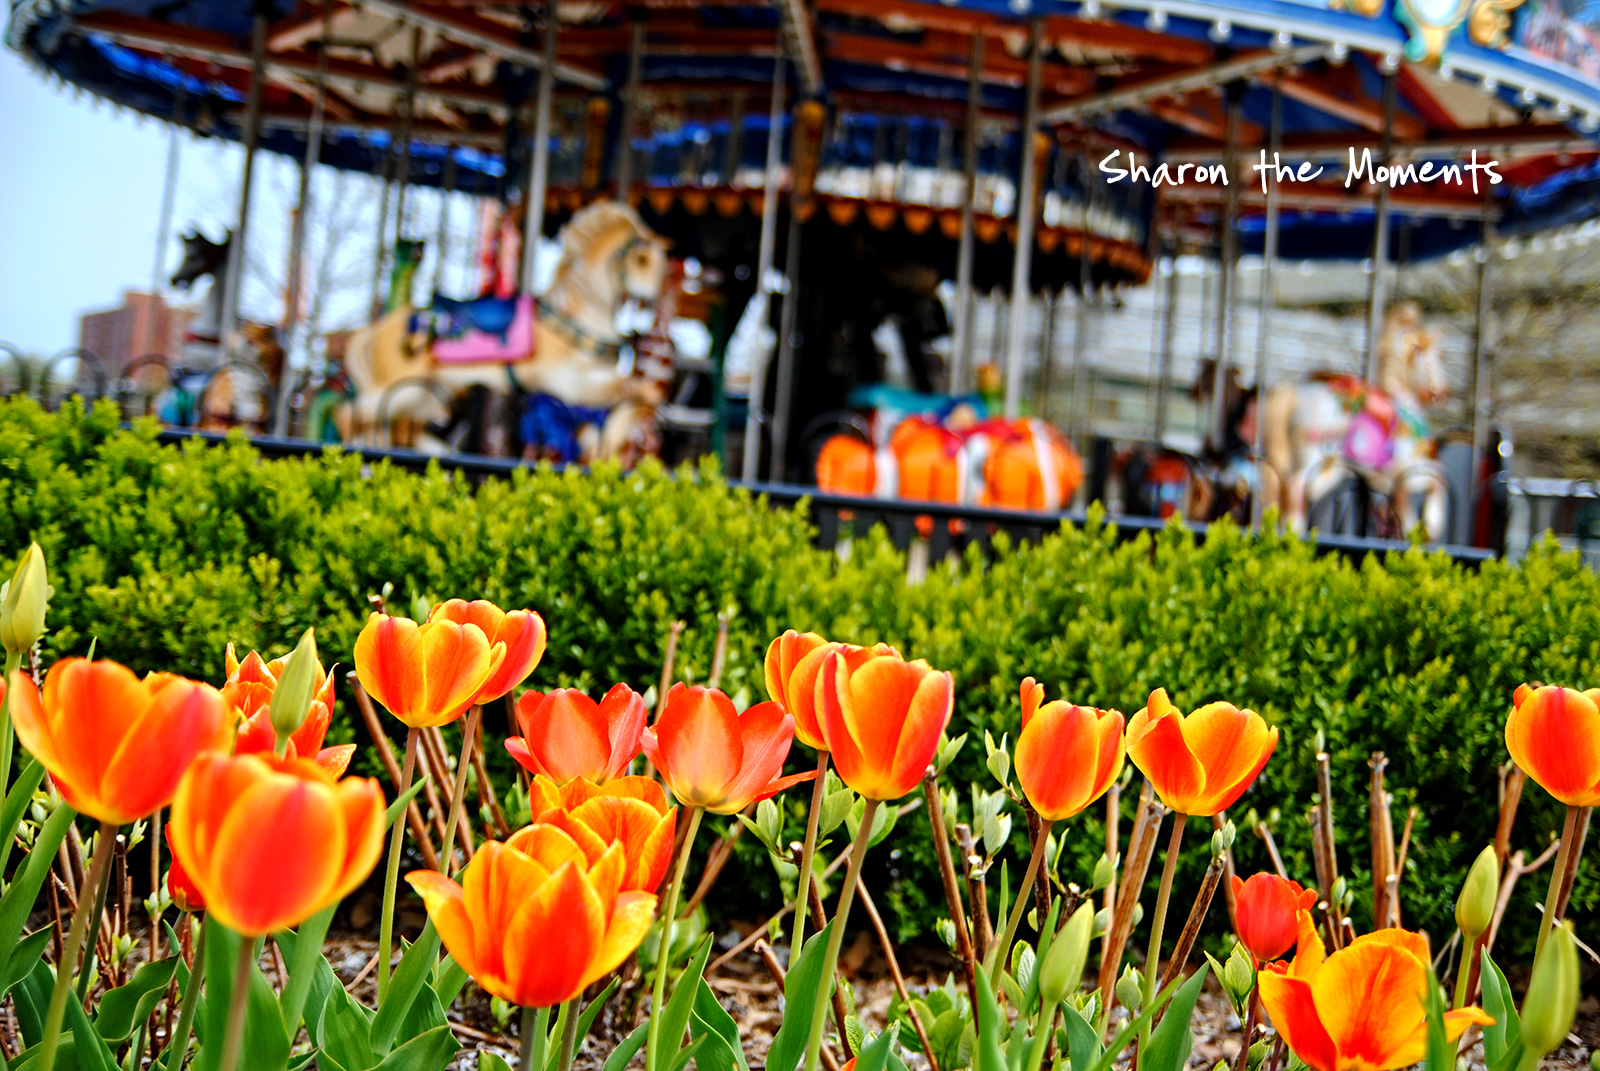 Monday Monday Spring Columbus Commons Downtown Columbus Ohio|Sharon the Moments blog